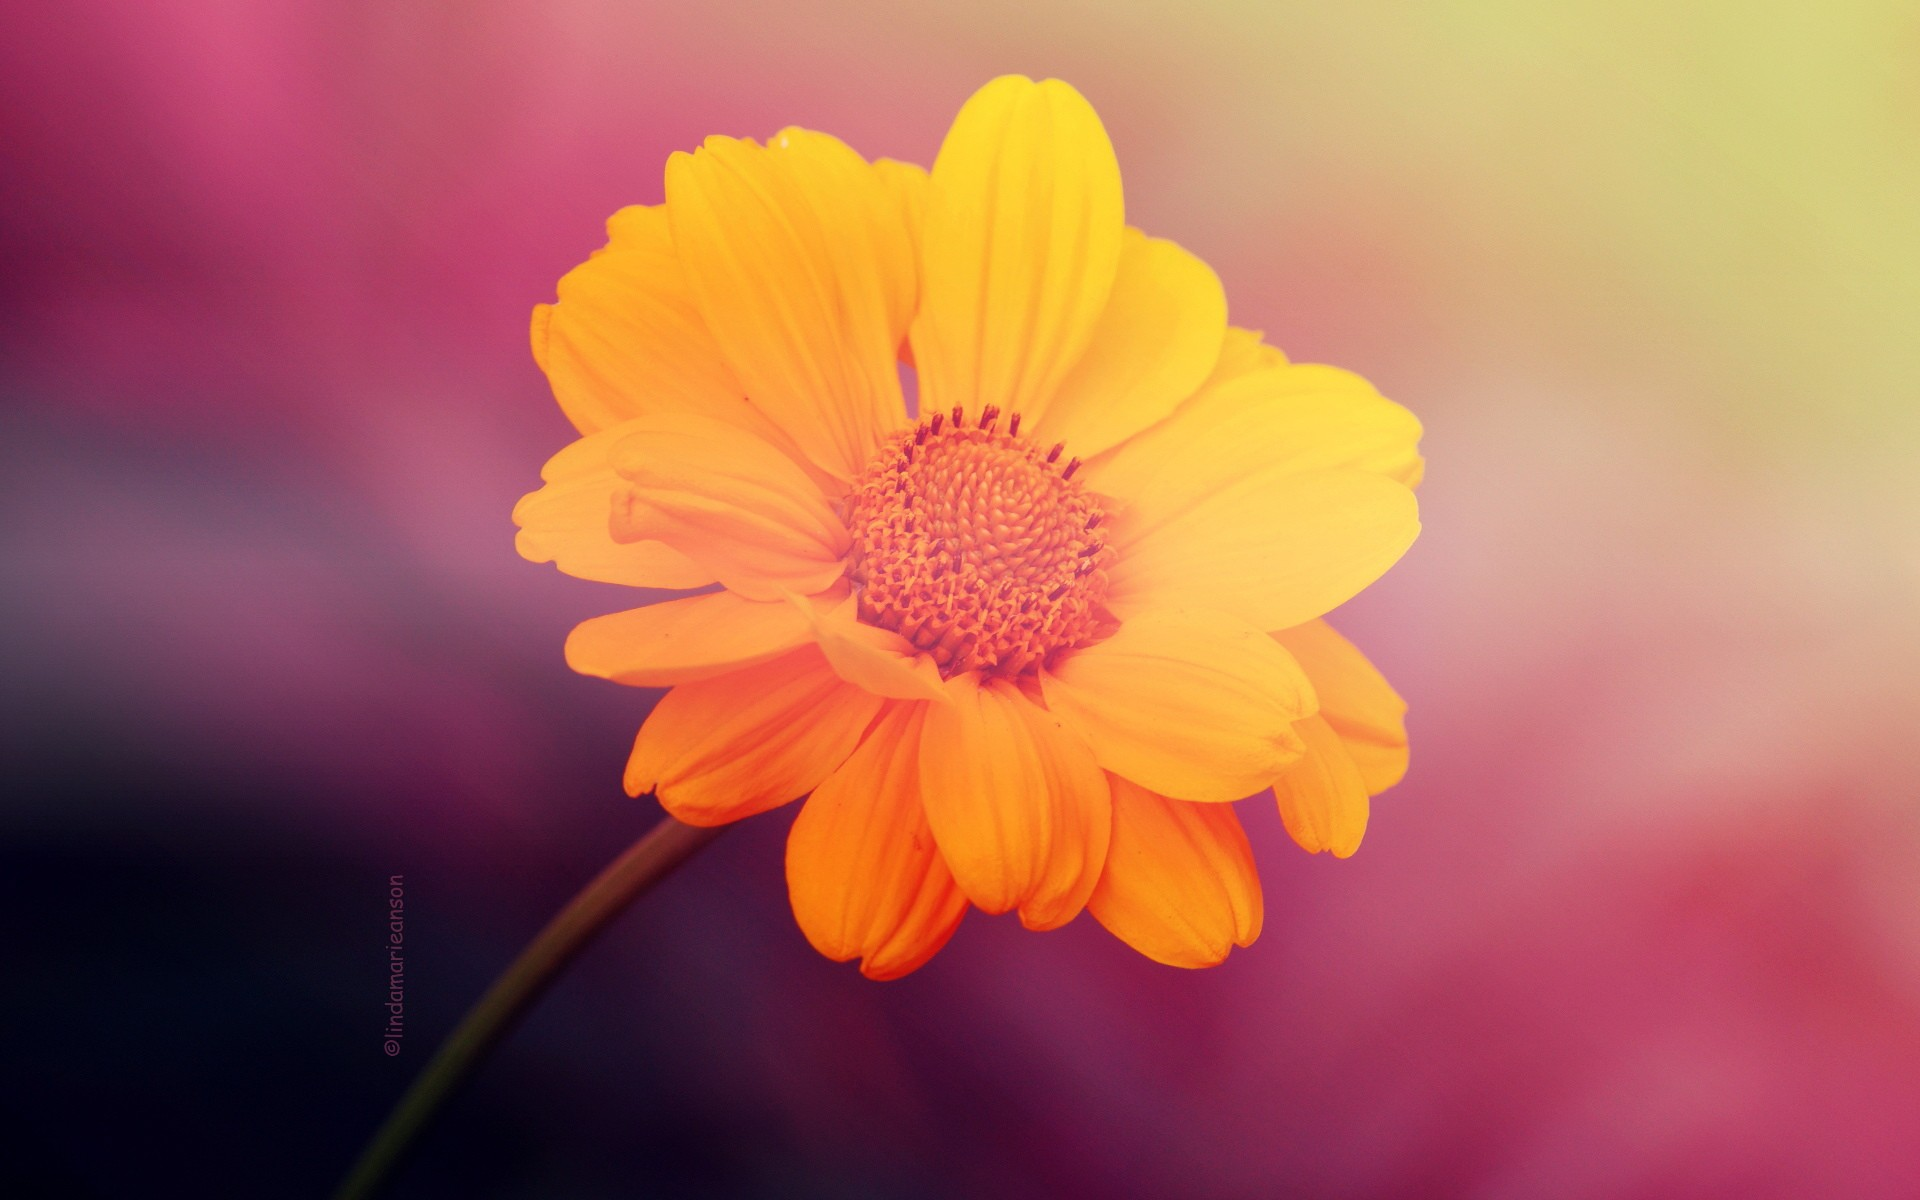 Yellow and pink flowers background yellow flower on pink background wallpapers yellow yellow and pink flowers background mightylinksfo